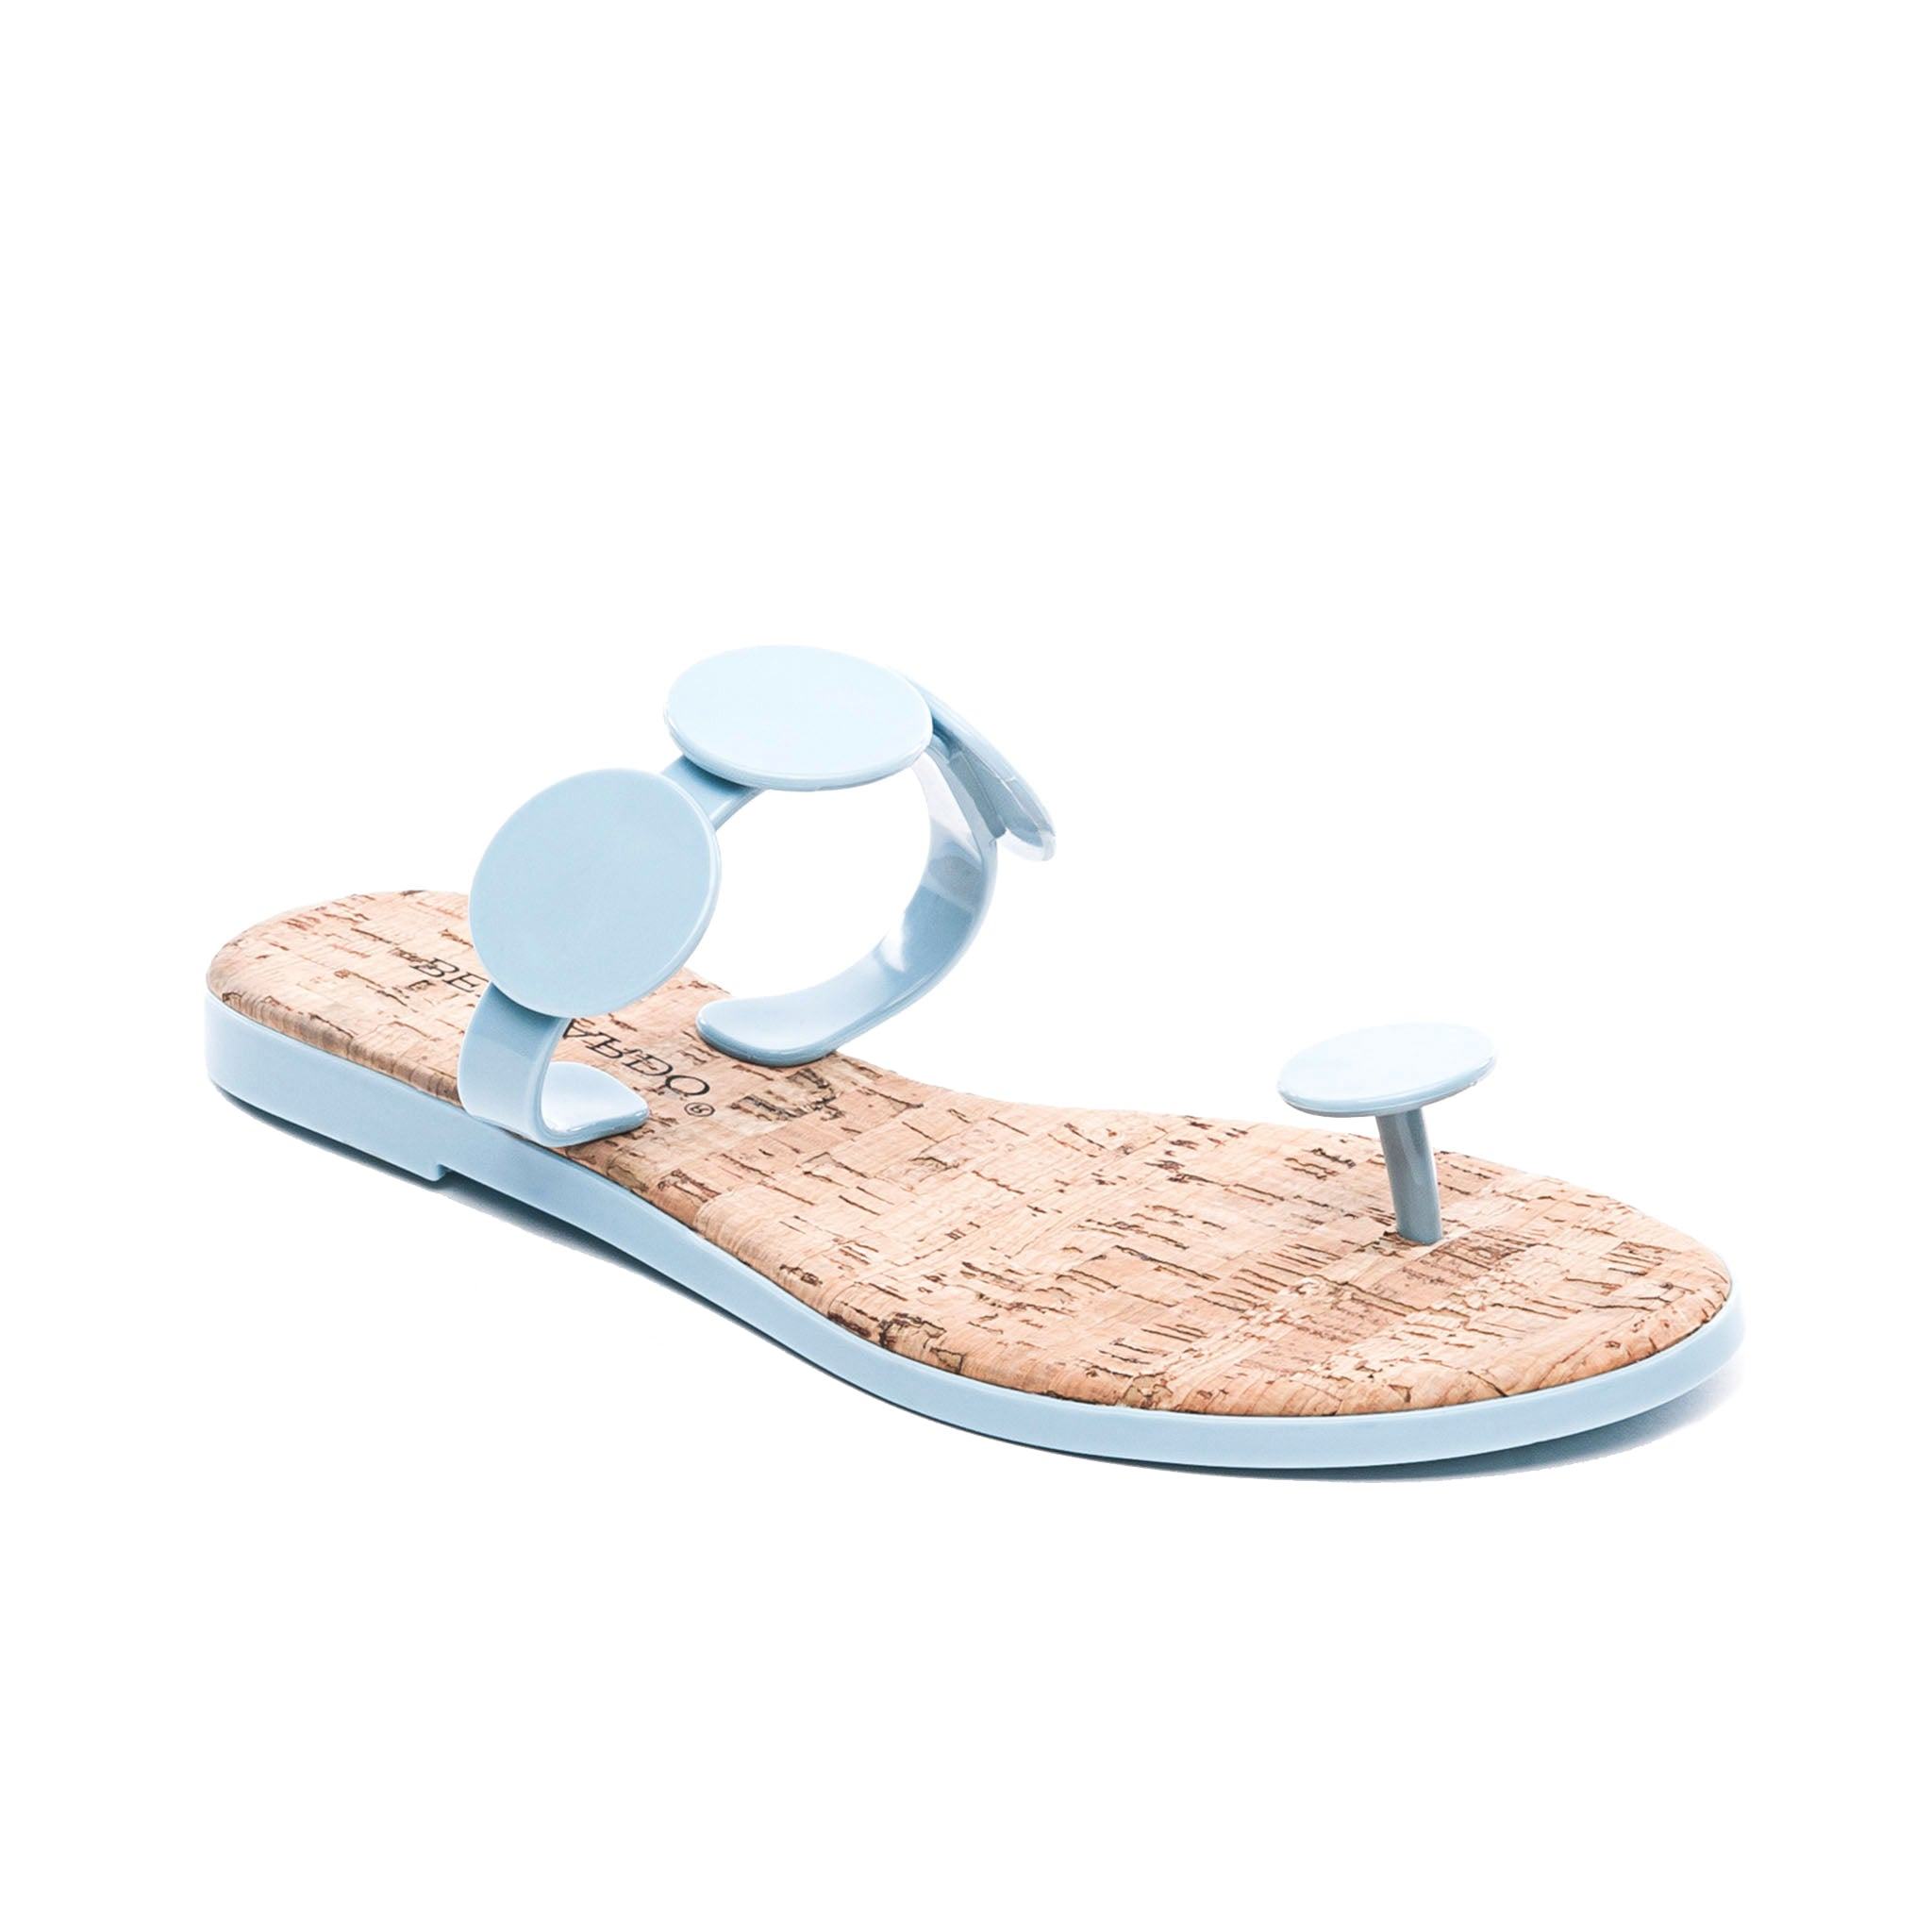 e46bc4e944 New Moon Jelly Flip Flop Sandal in New Ocean Blue Rubber – Bernardo 1946